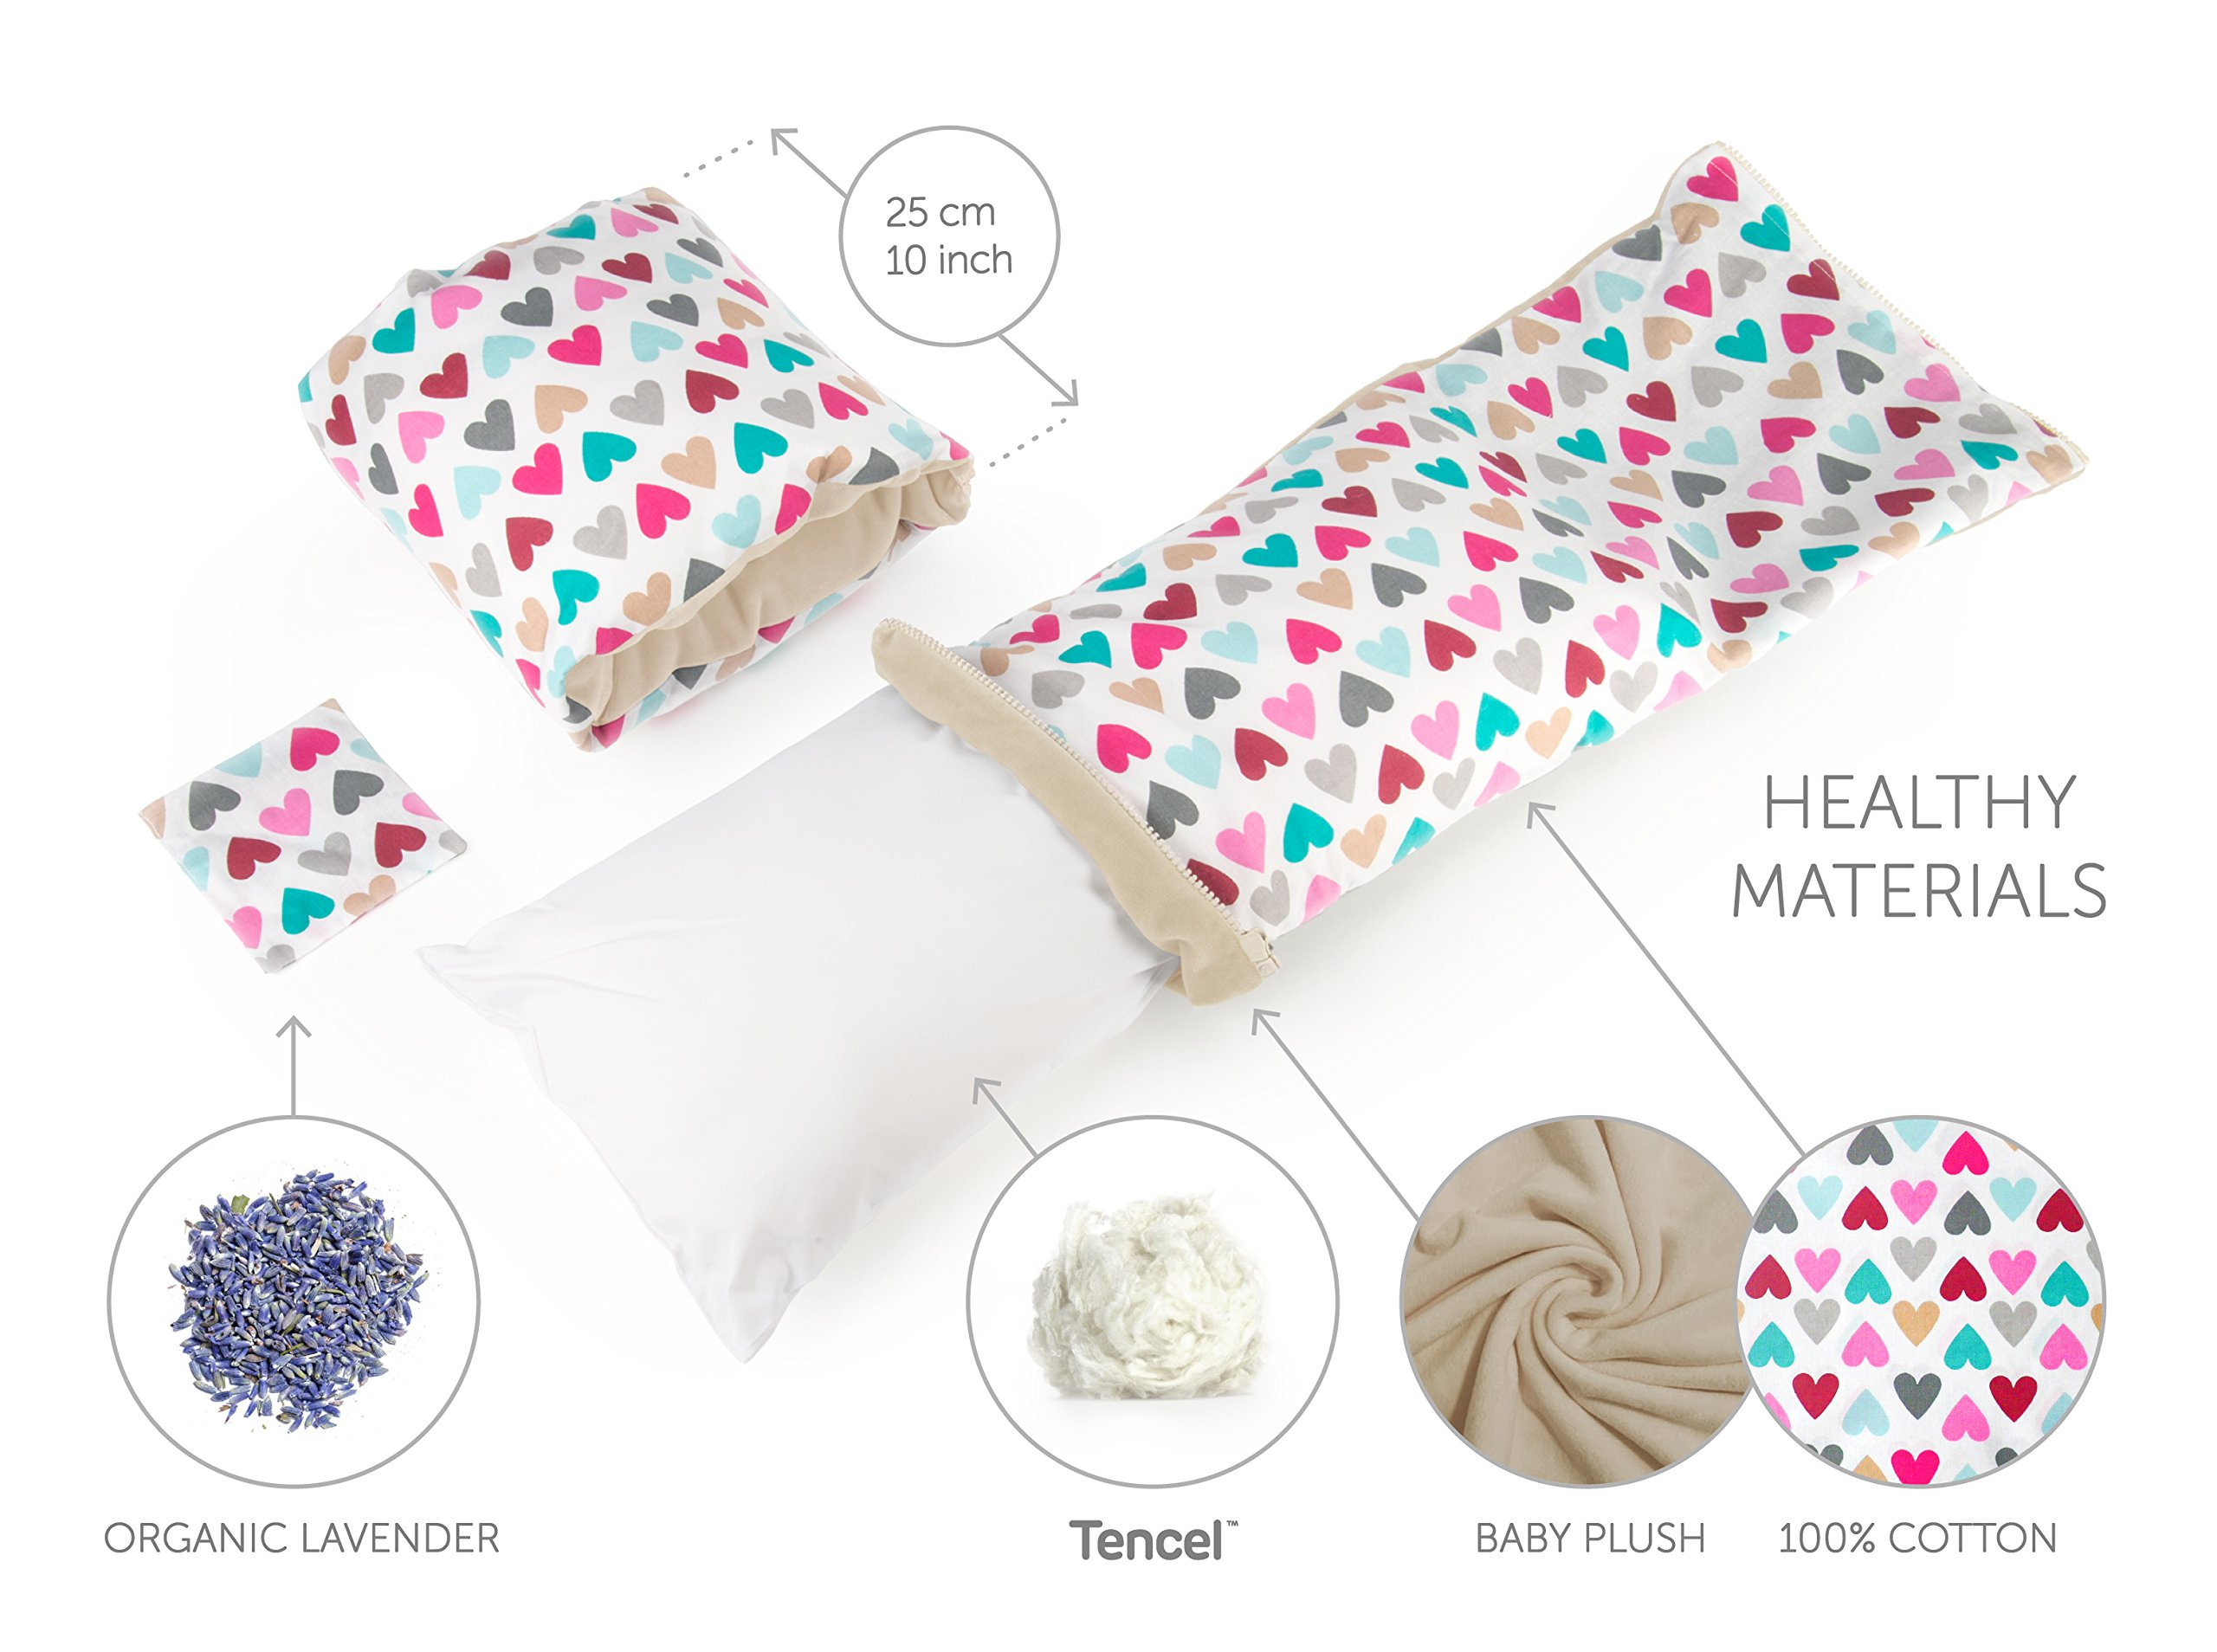 Benjamin Button - Arm Nursing, Breastfeeding Pillow and Positioner   Organic, Natural, Ergonomic Back Support Shape by Benjamin Button (Image #5)